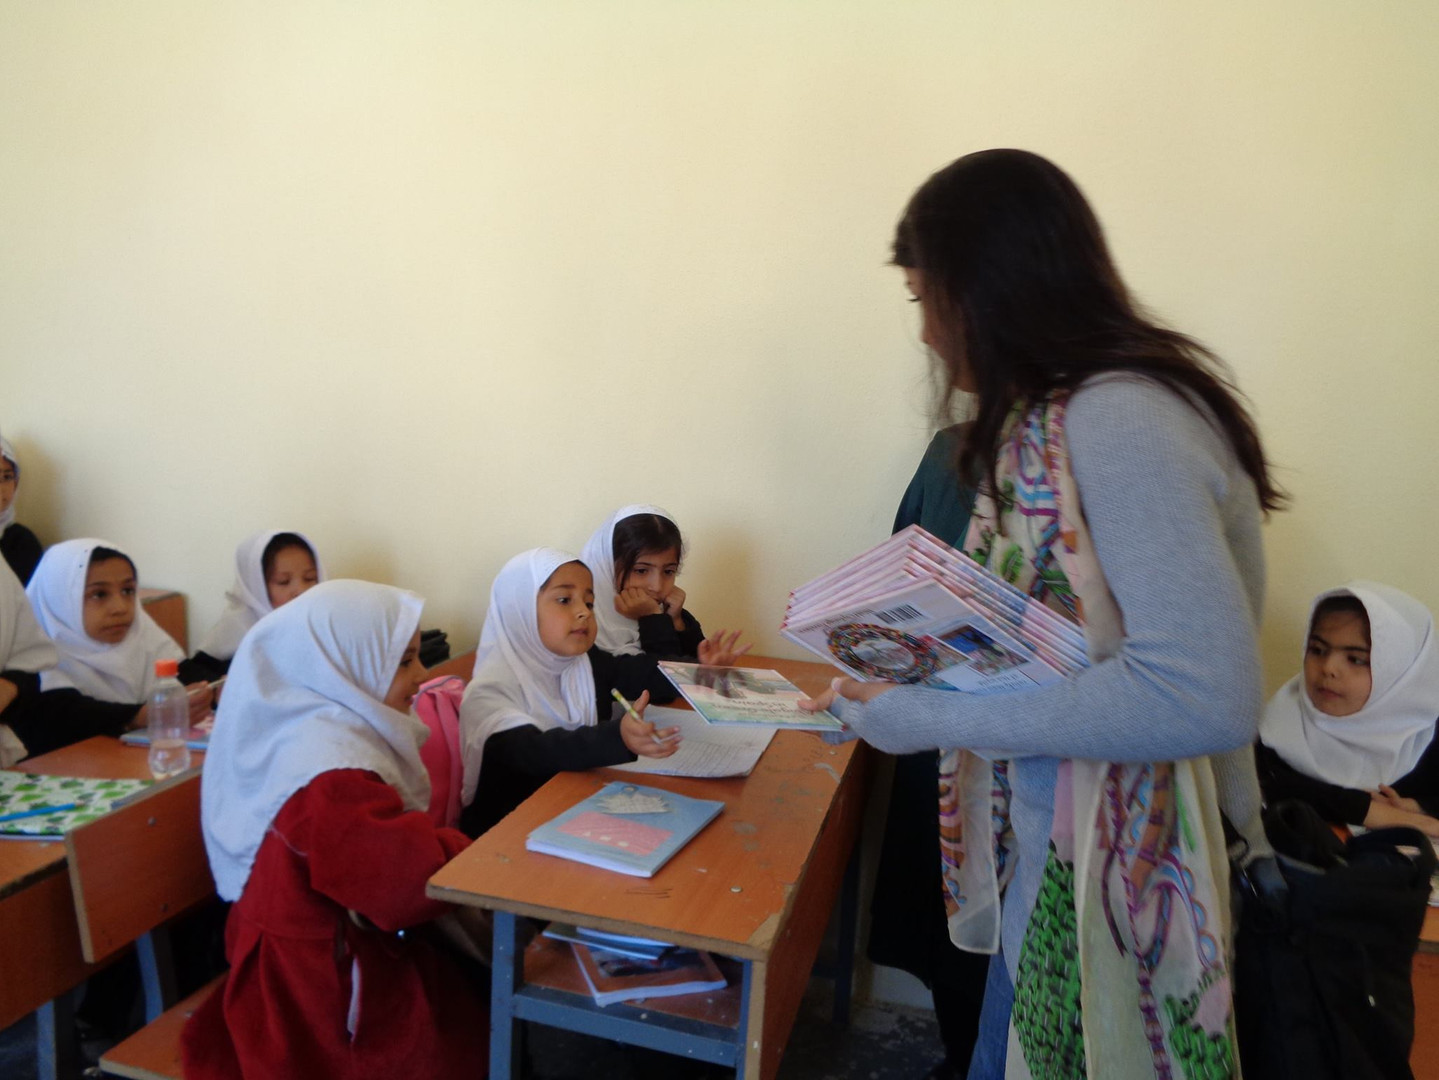 Sara Kazimi while distributing educational books to school students